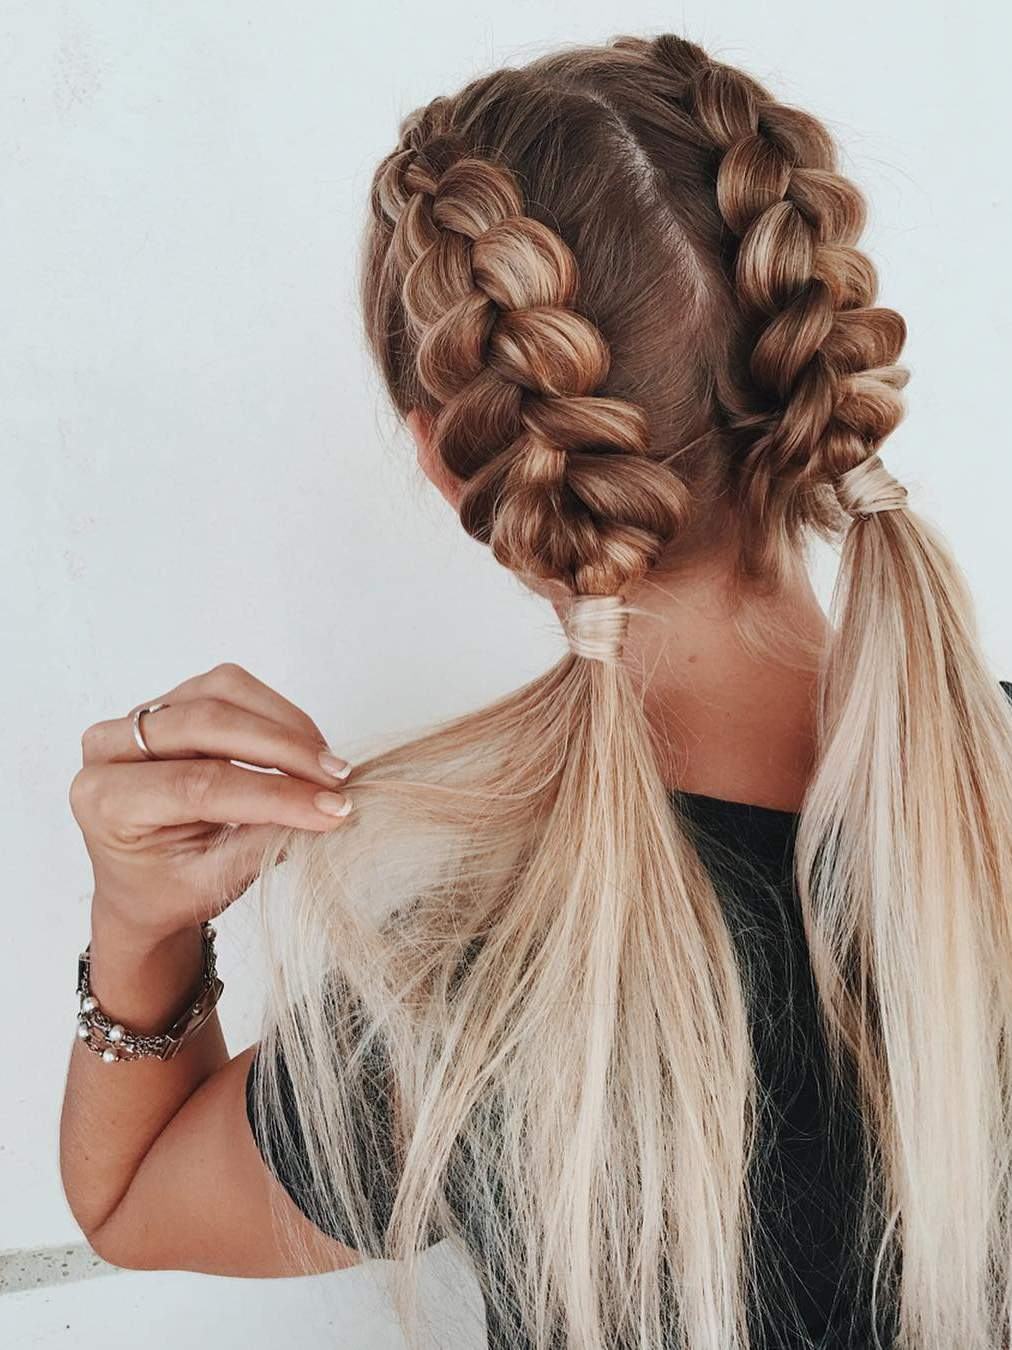 7 braided hairstyles that people are loving on pinterest - health